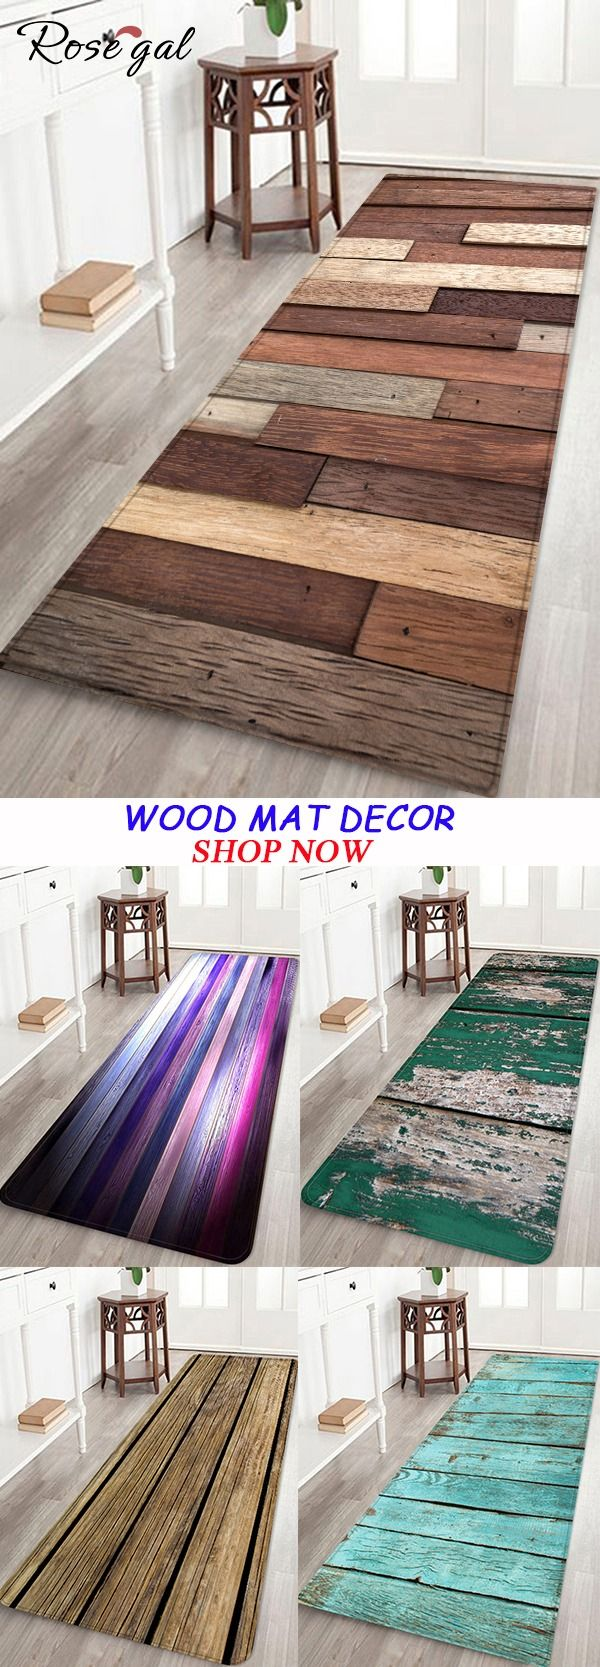 Wood Mat Anti Slid Floor Area Rug For House Decoration Rosegal Mat Decoration Rugs In Living Room Floor Area Rugs Trendy Living Rooms